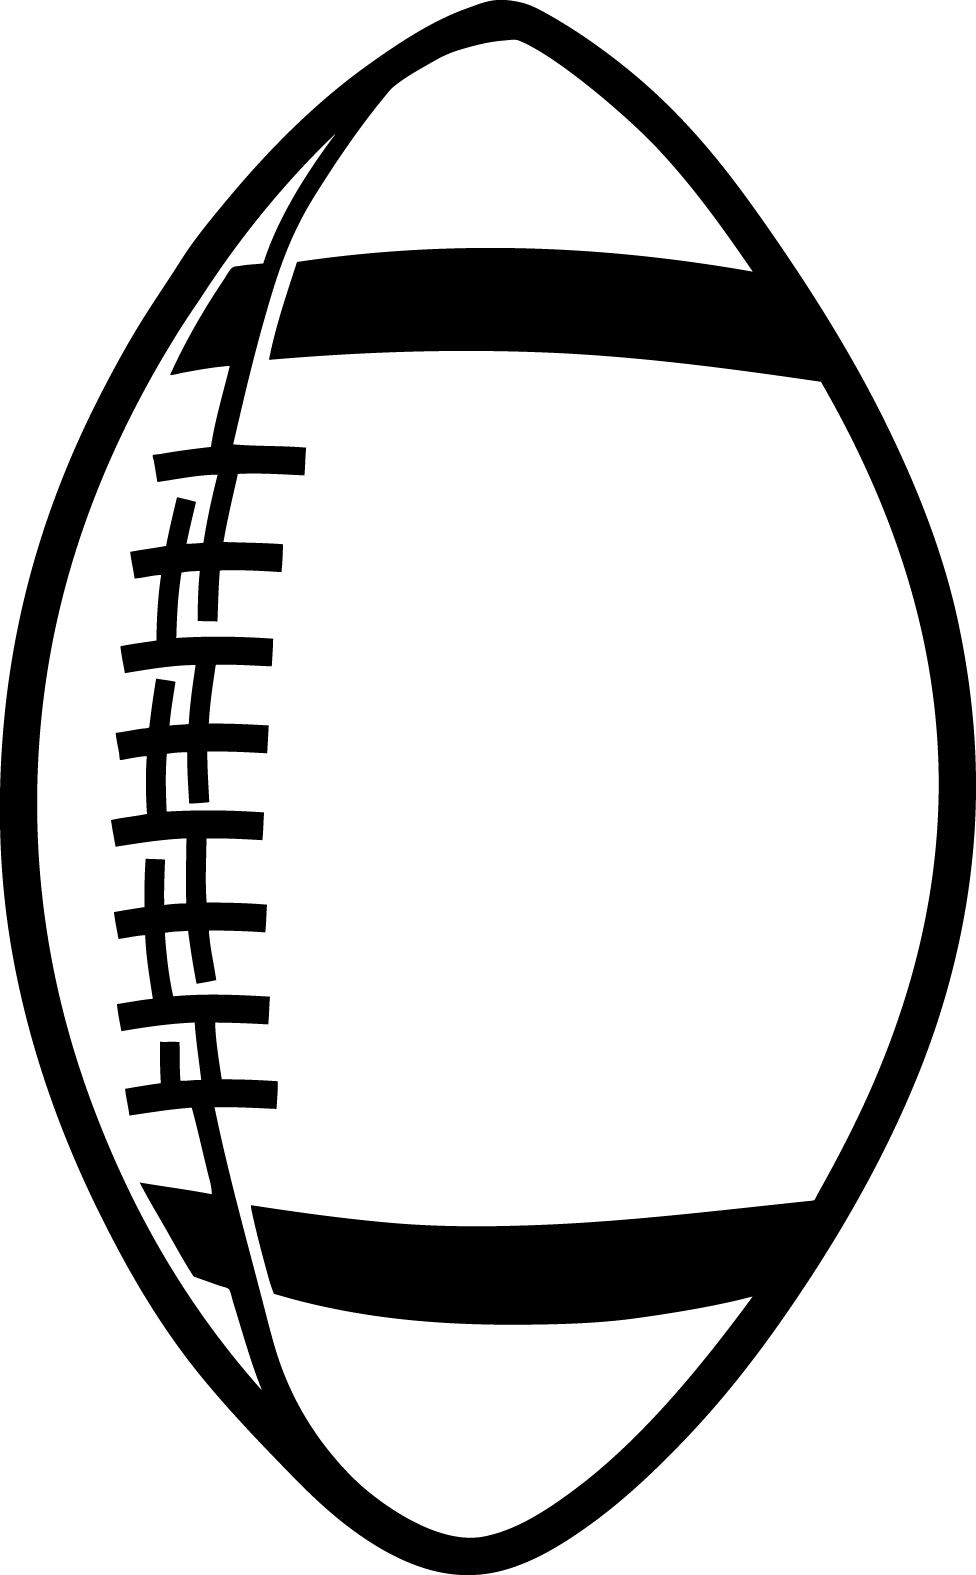 Football Clipart Black And White-football clipart black and white-1